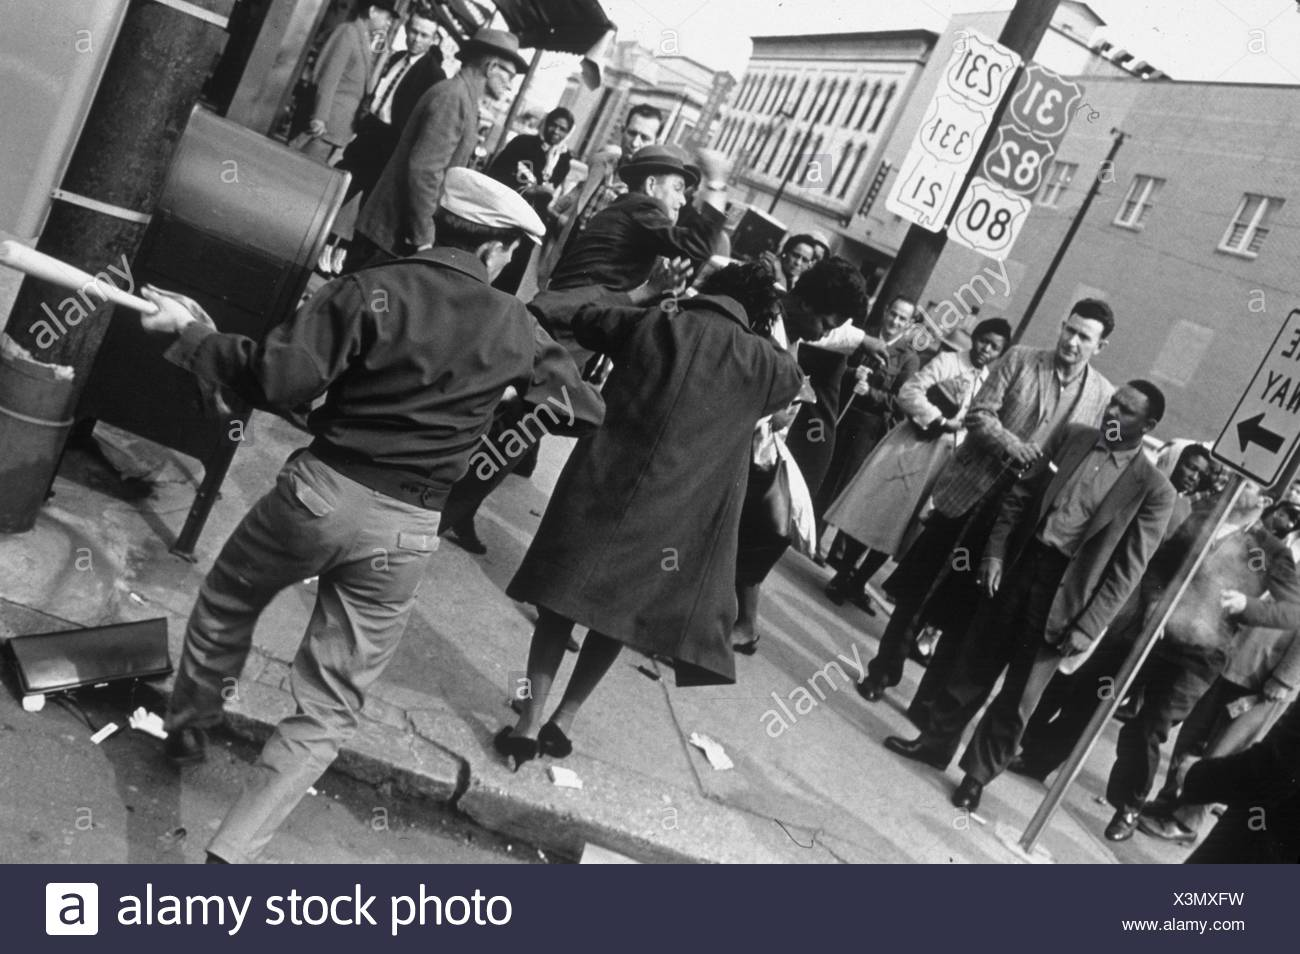 US Civil Rights - Stock Image